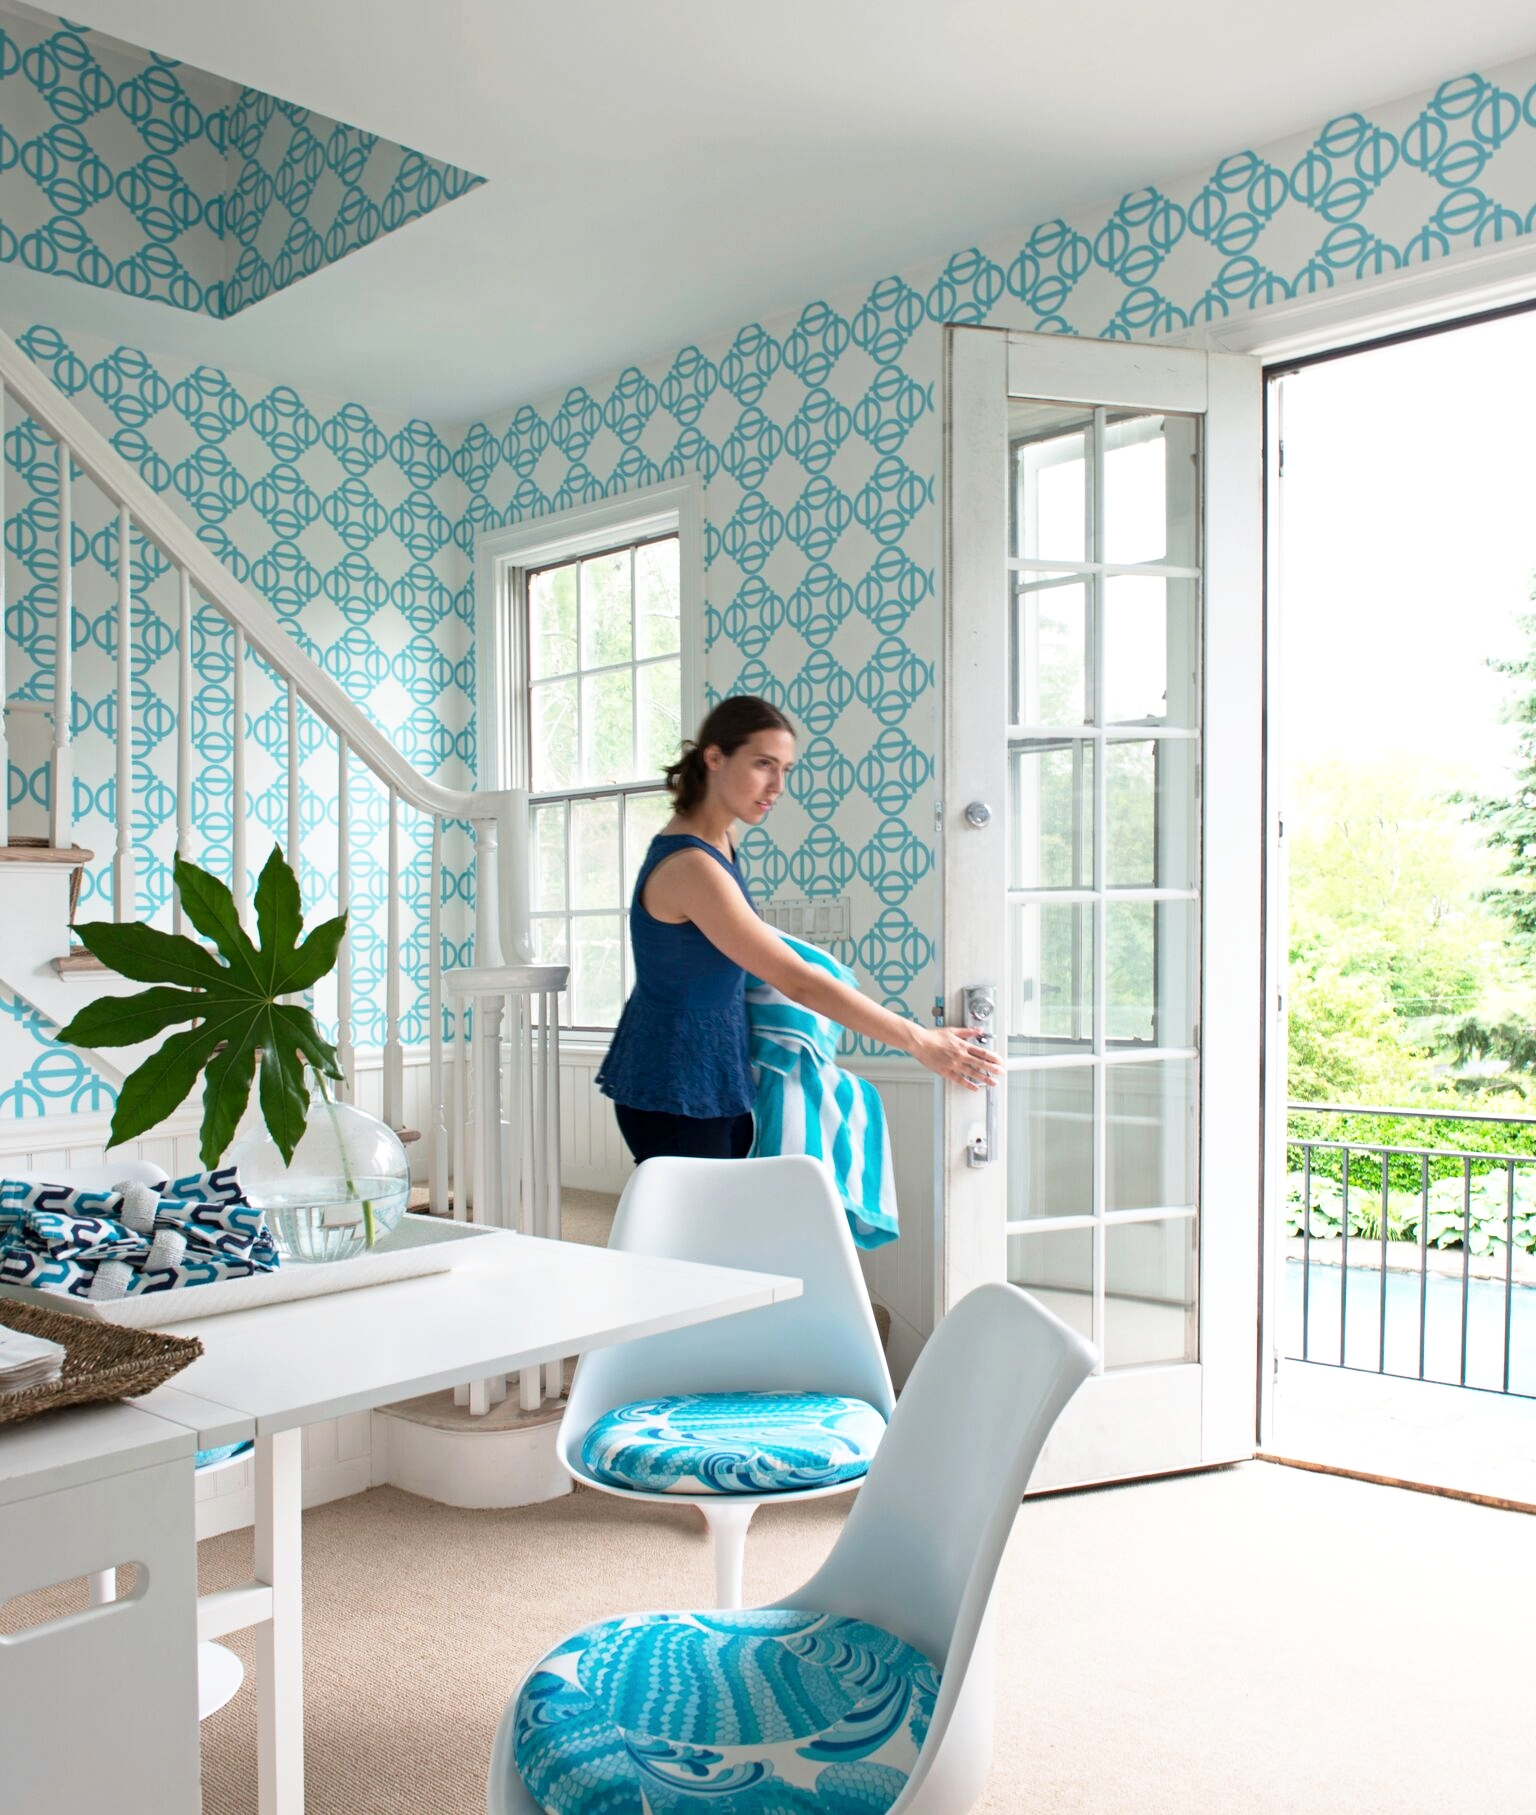 Lydia at home interior design by Laura Tutun - design, patterns, architecture